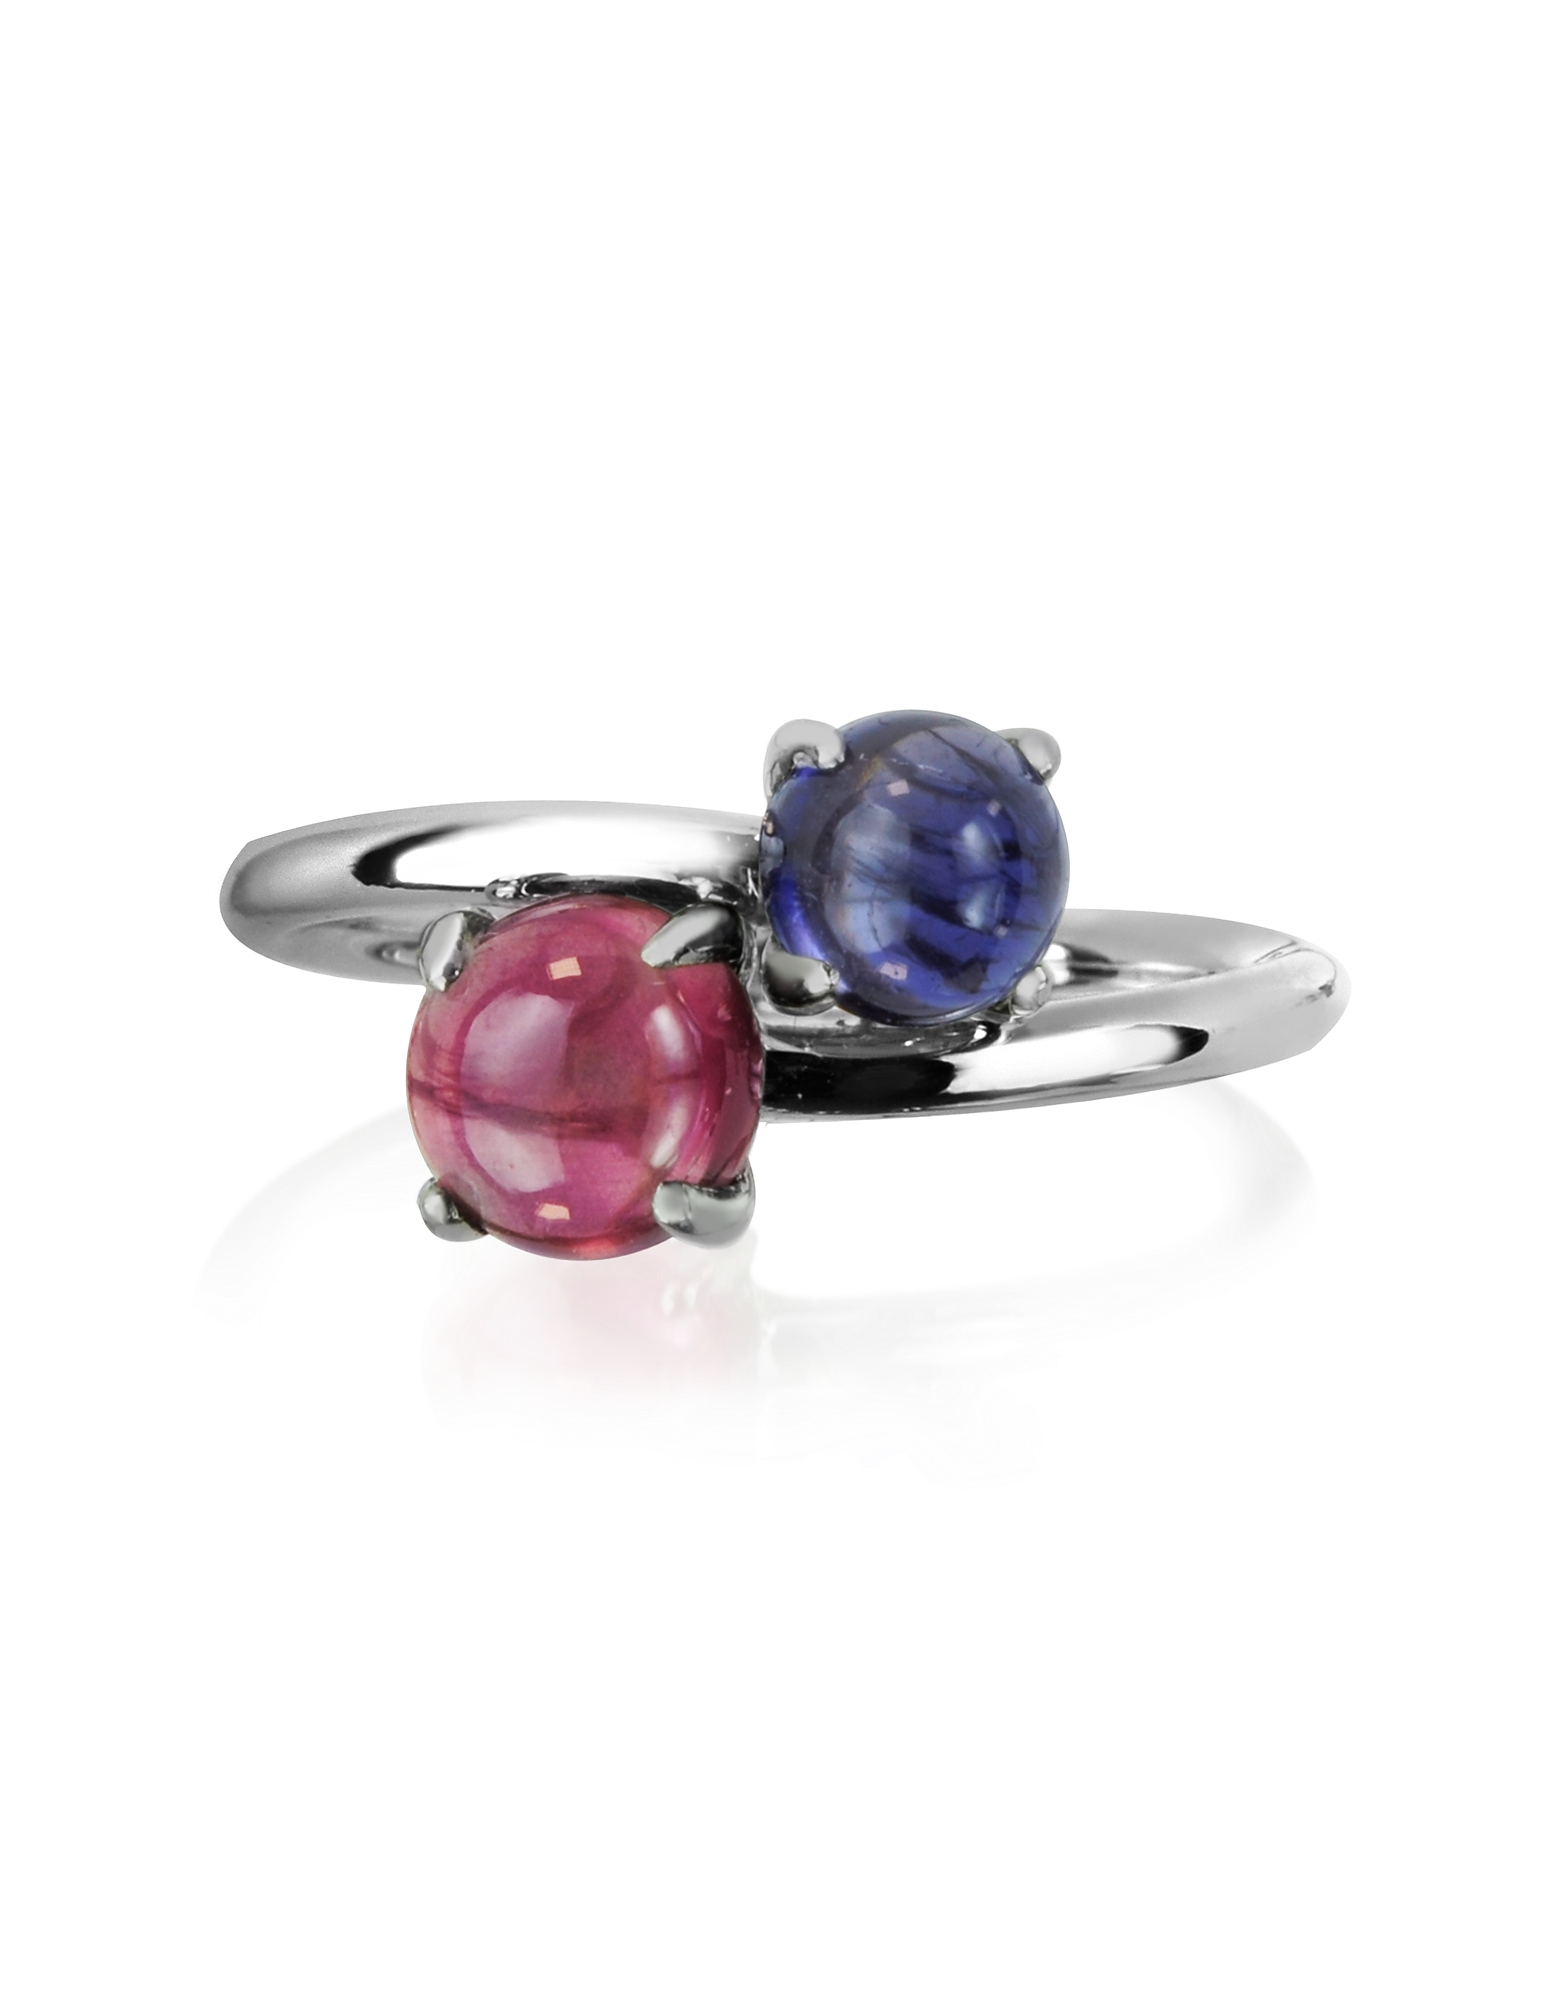 Mia & Beverly Rings, Iolite and Garnet 18K White Gold Ring